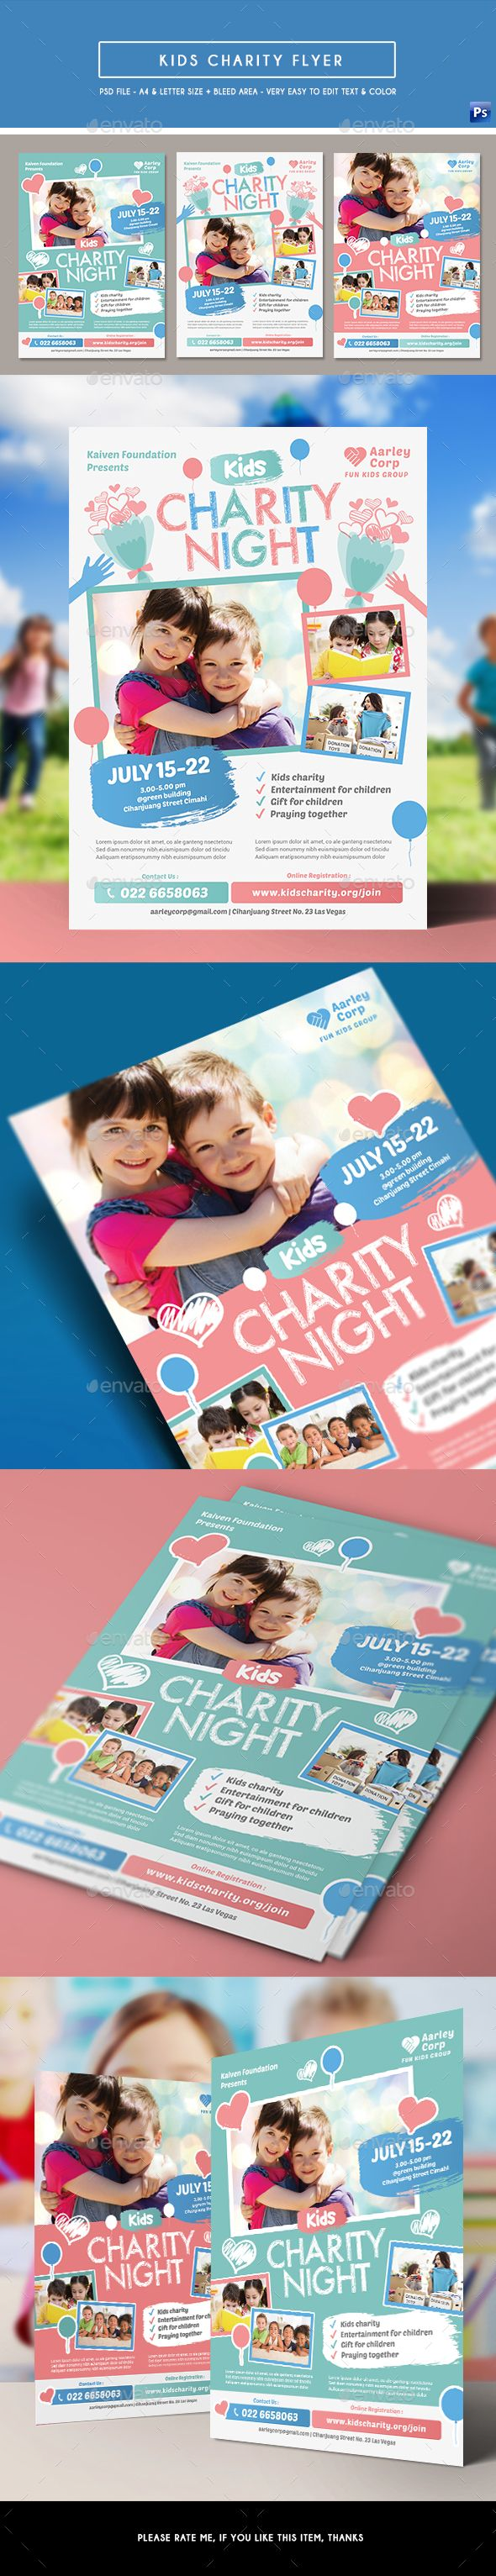 Kids Charity Event Flyer - Events Flyers